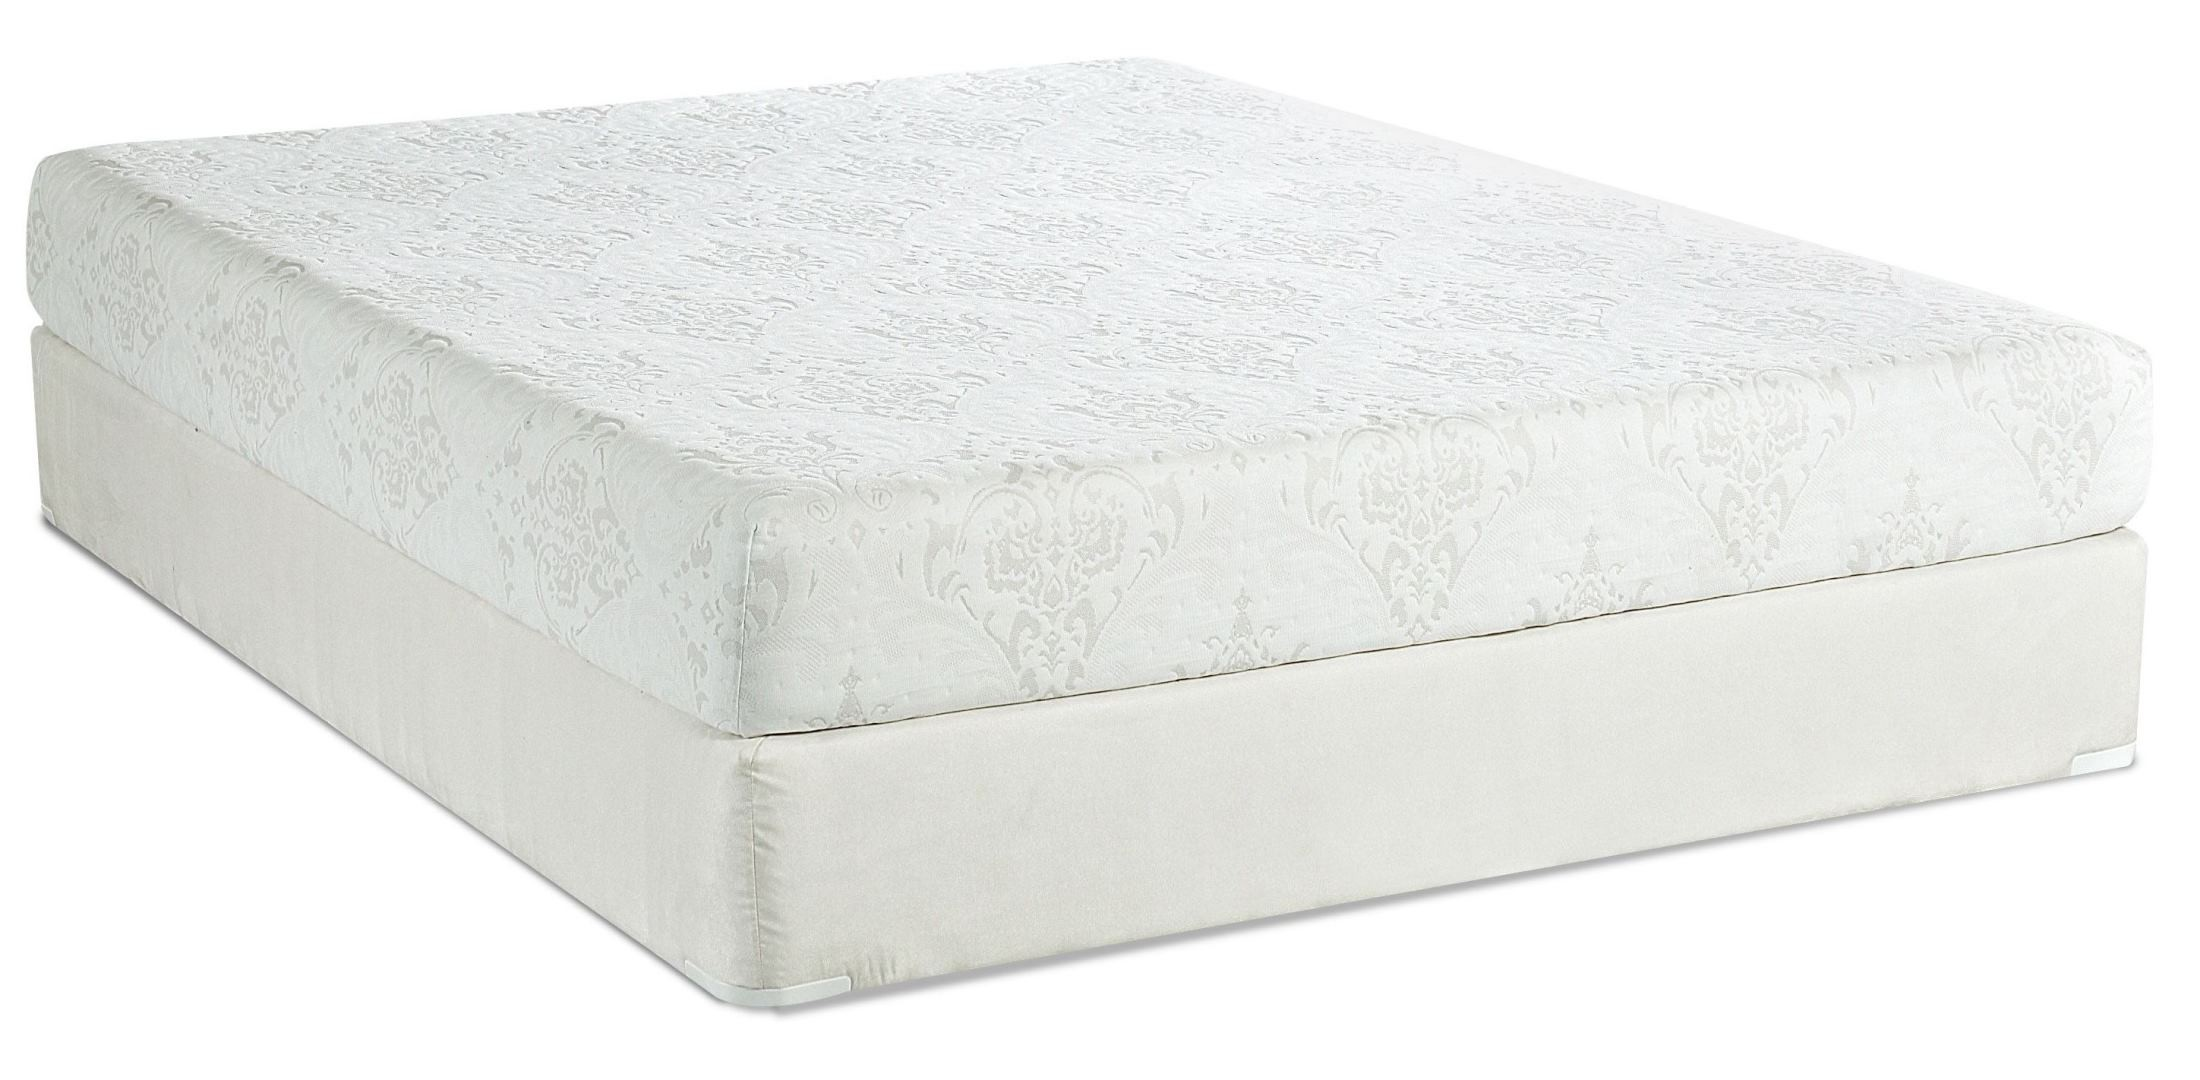 Hampton 8 Memory Foam King Mattress From Klaussner Hamptonkkmat Coleman Furniture